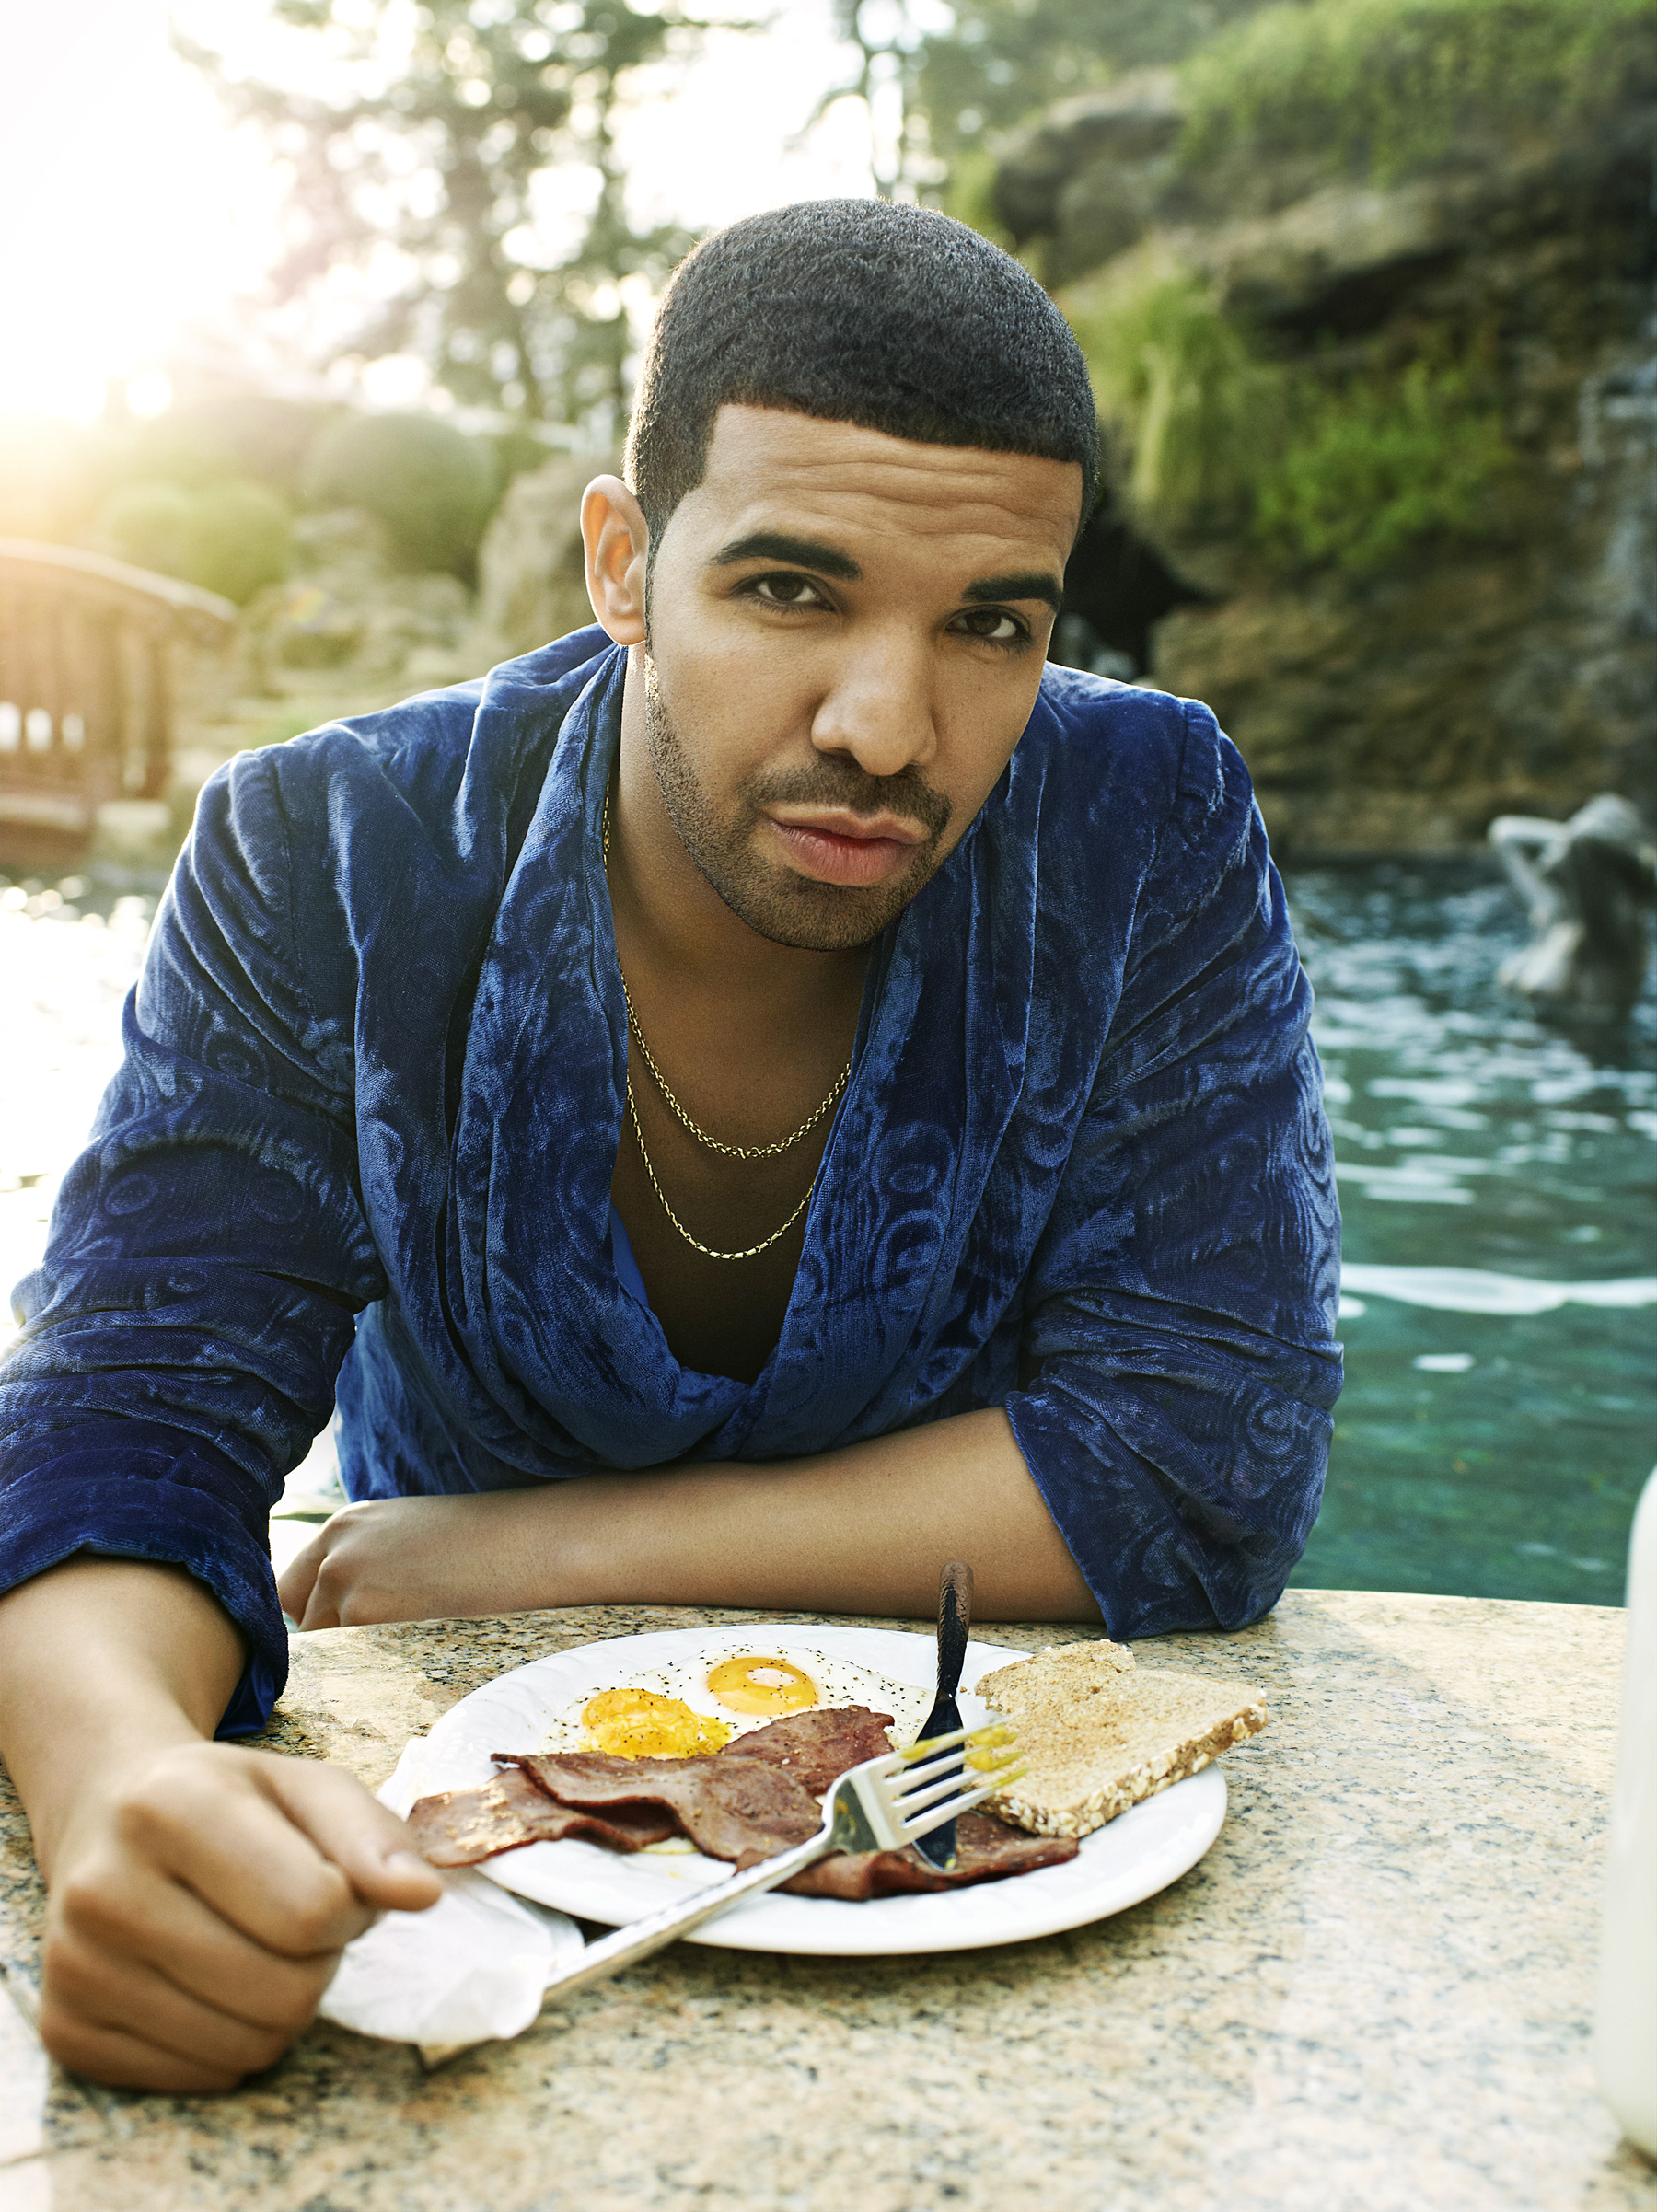 Drake: High Times at the YOLO Estate